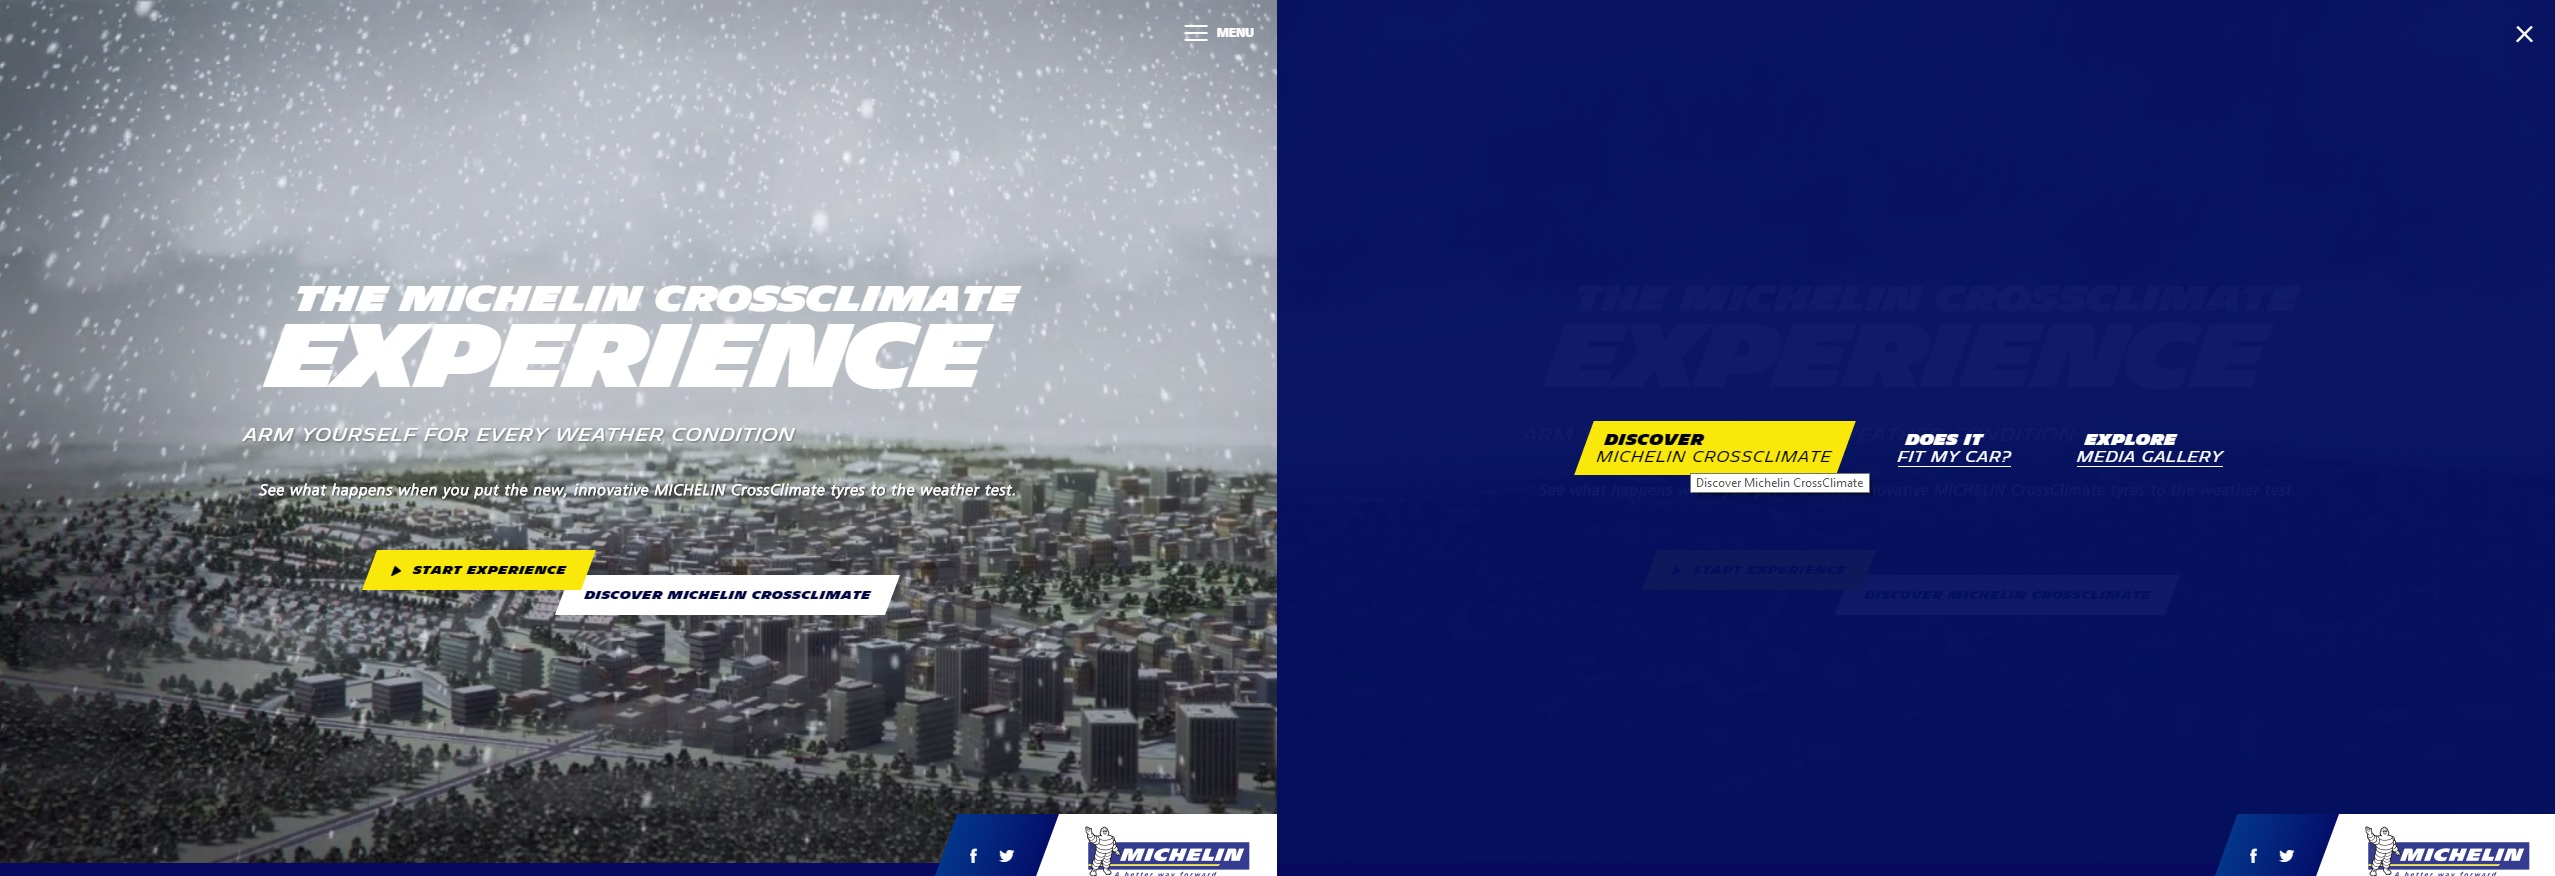 crossclimate-michelin